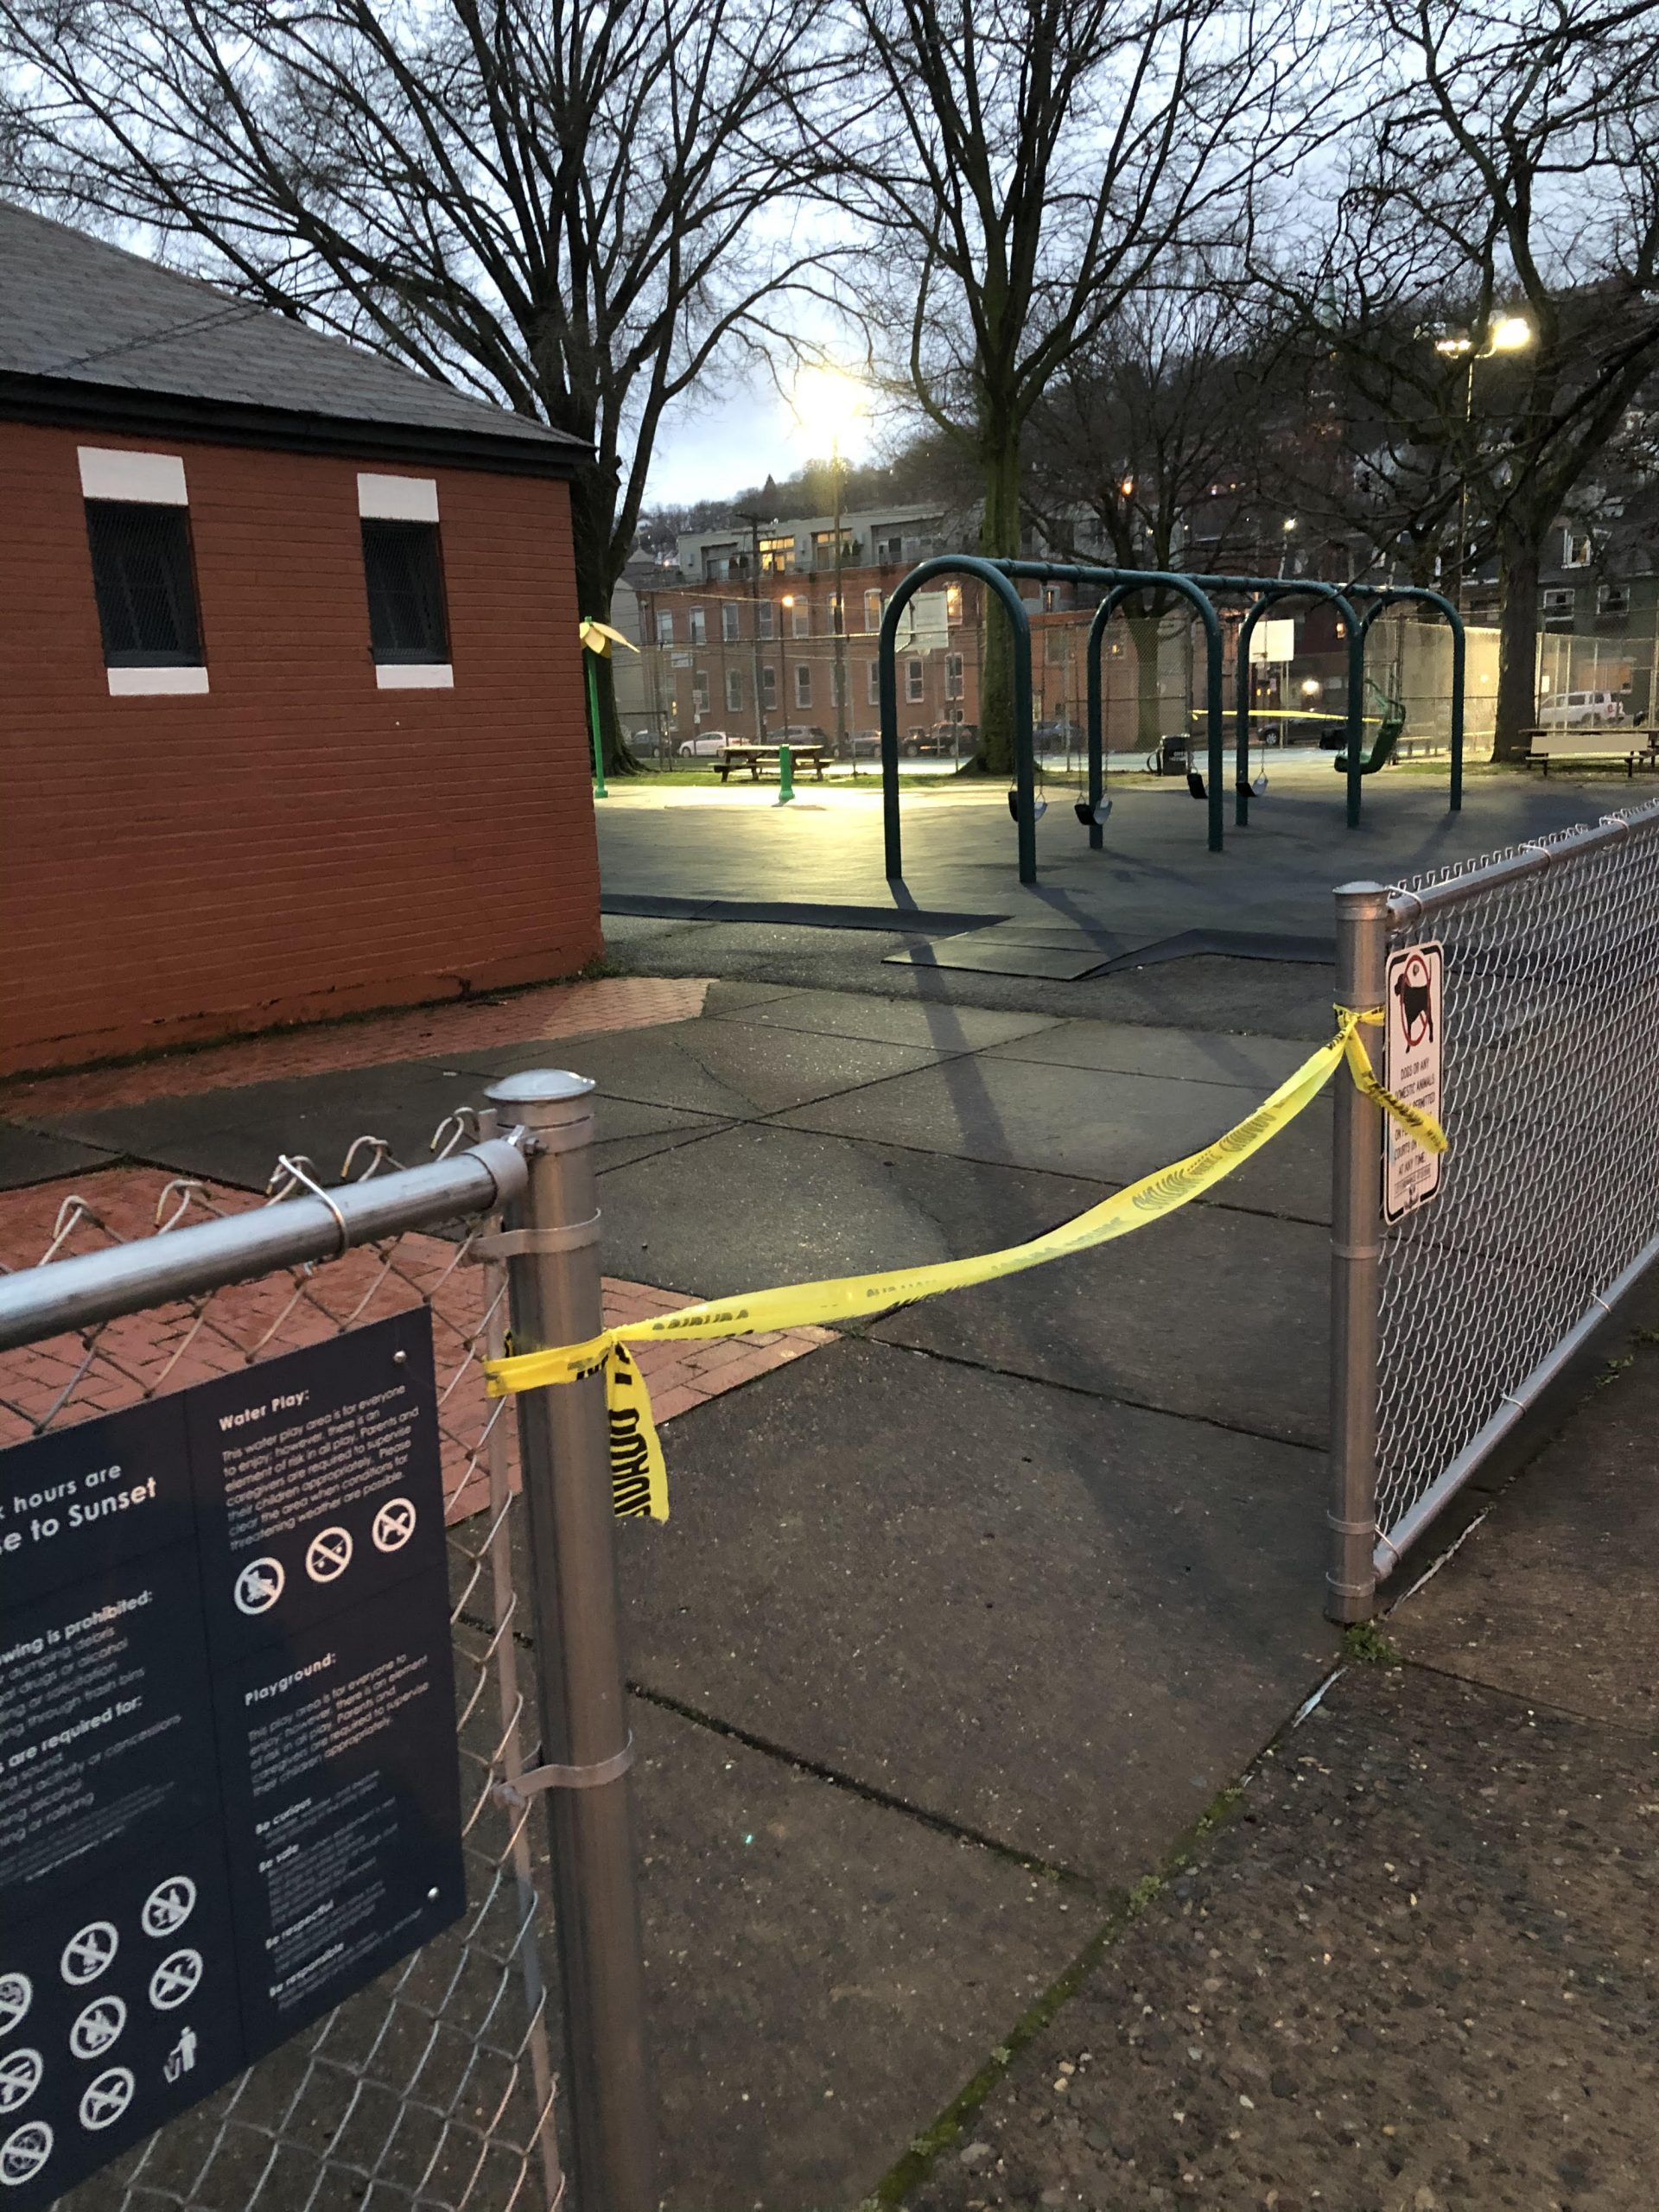 Armstrong Park is closed for COVID-19